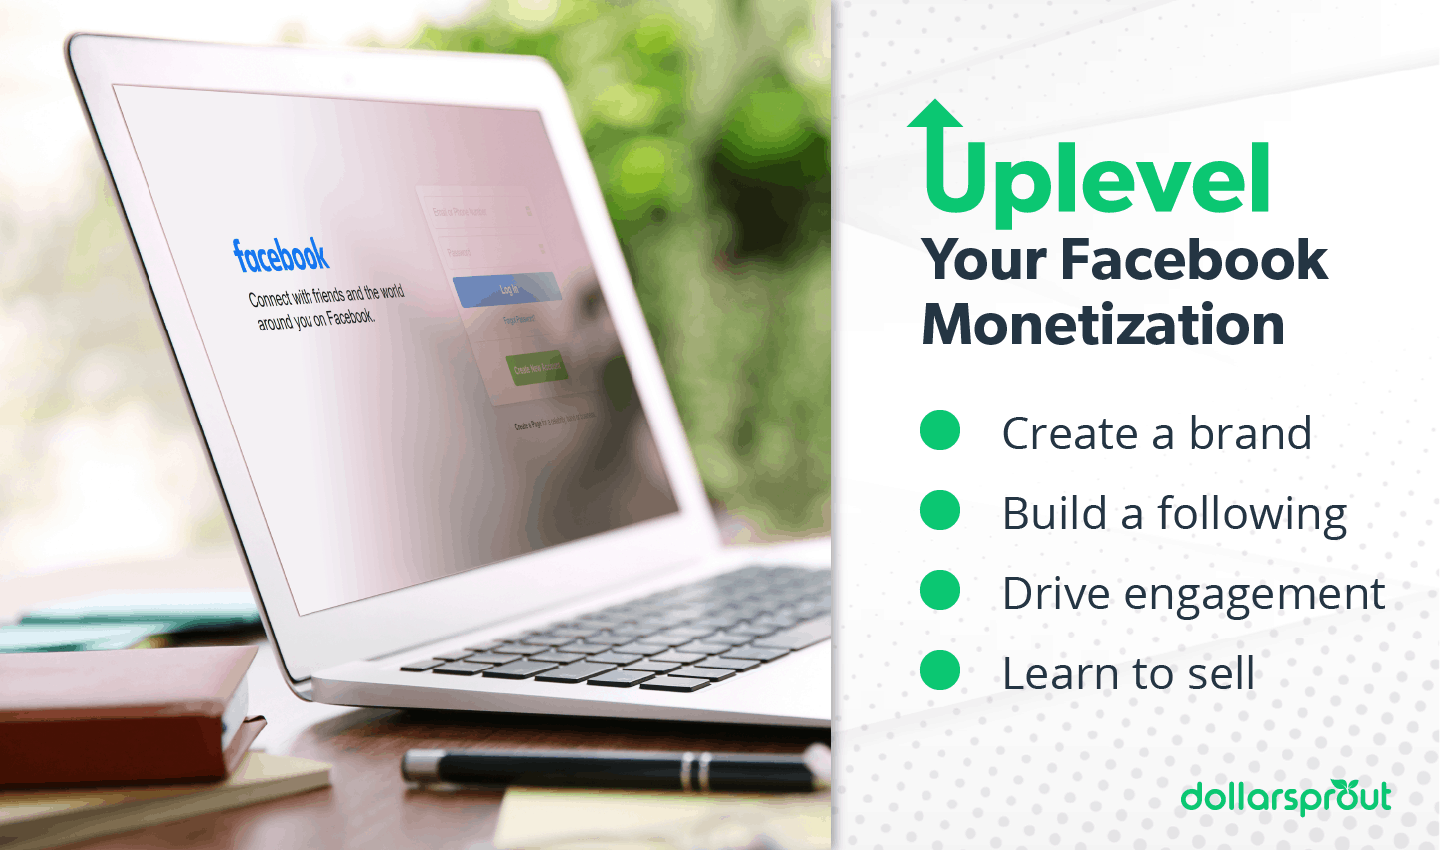 Uplevel your Facebook monetization